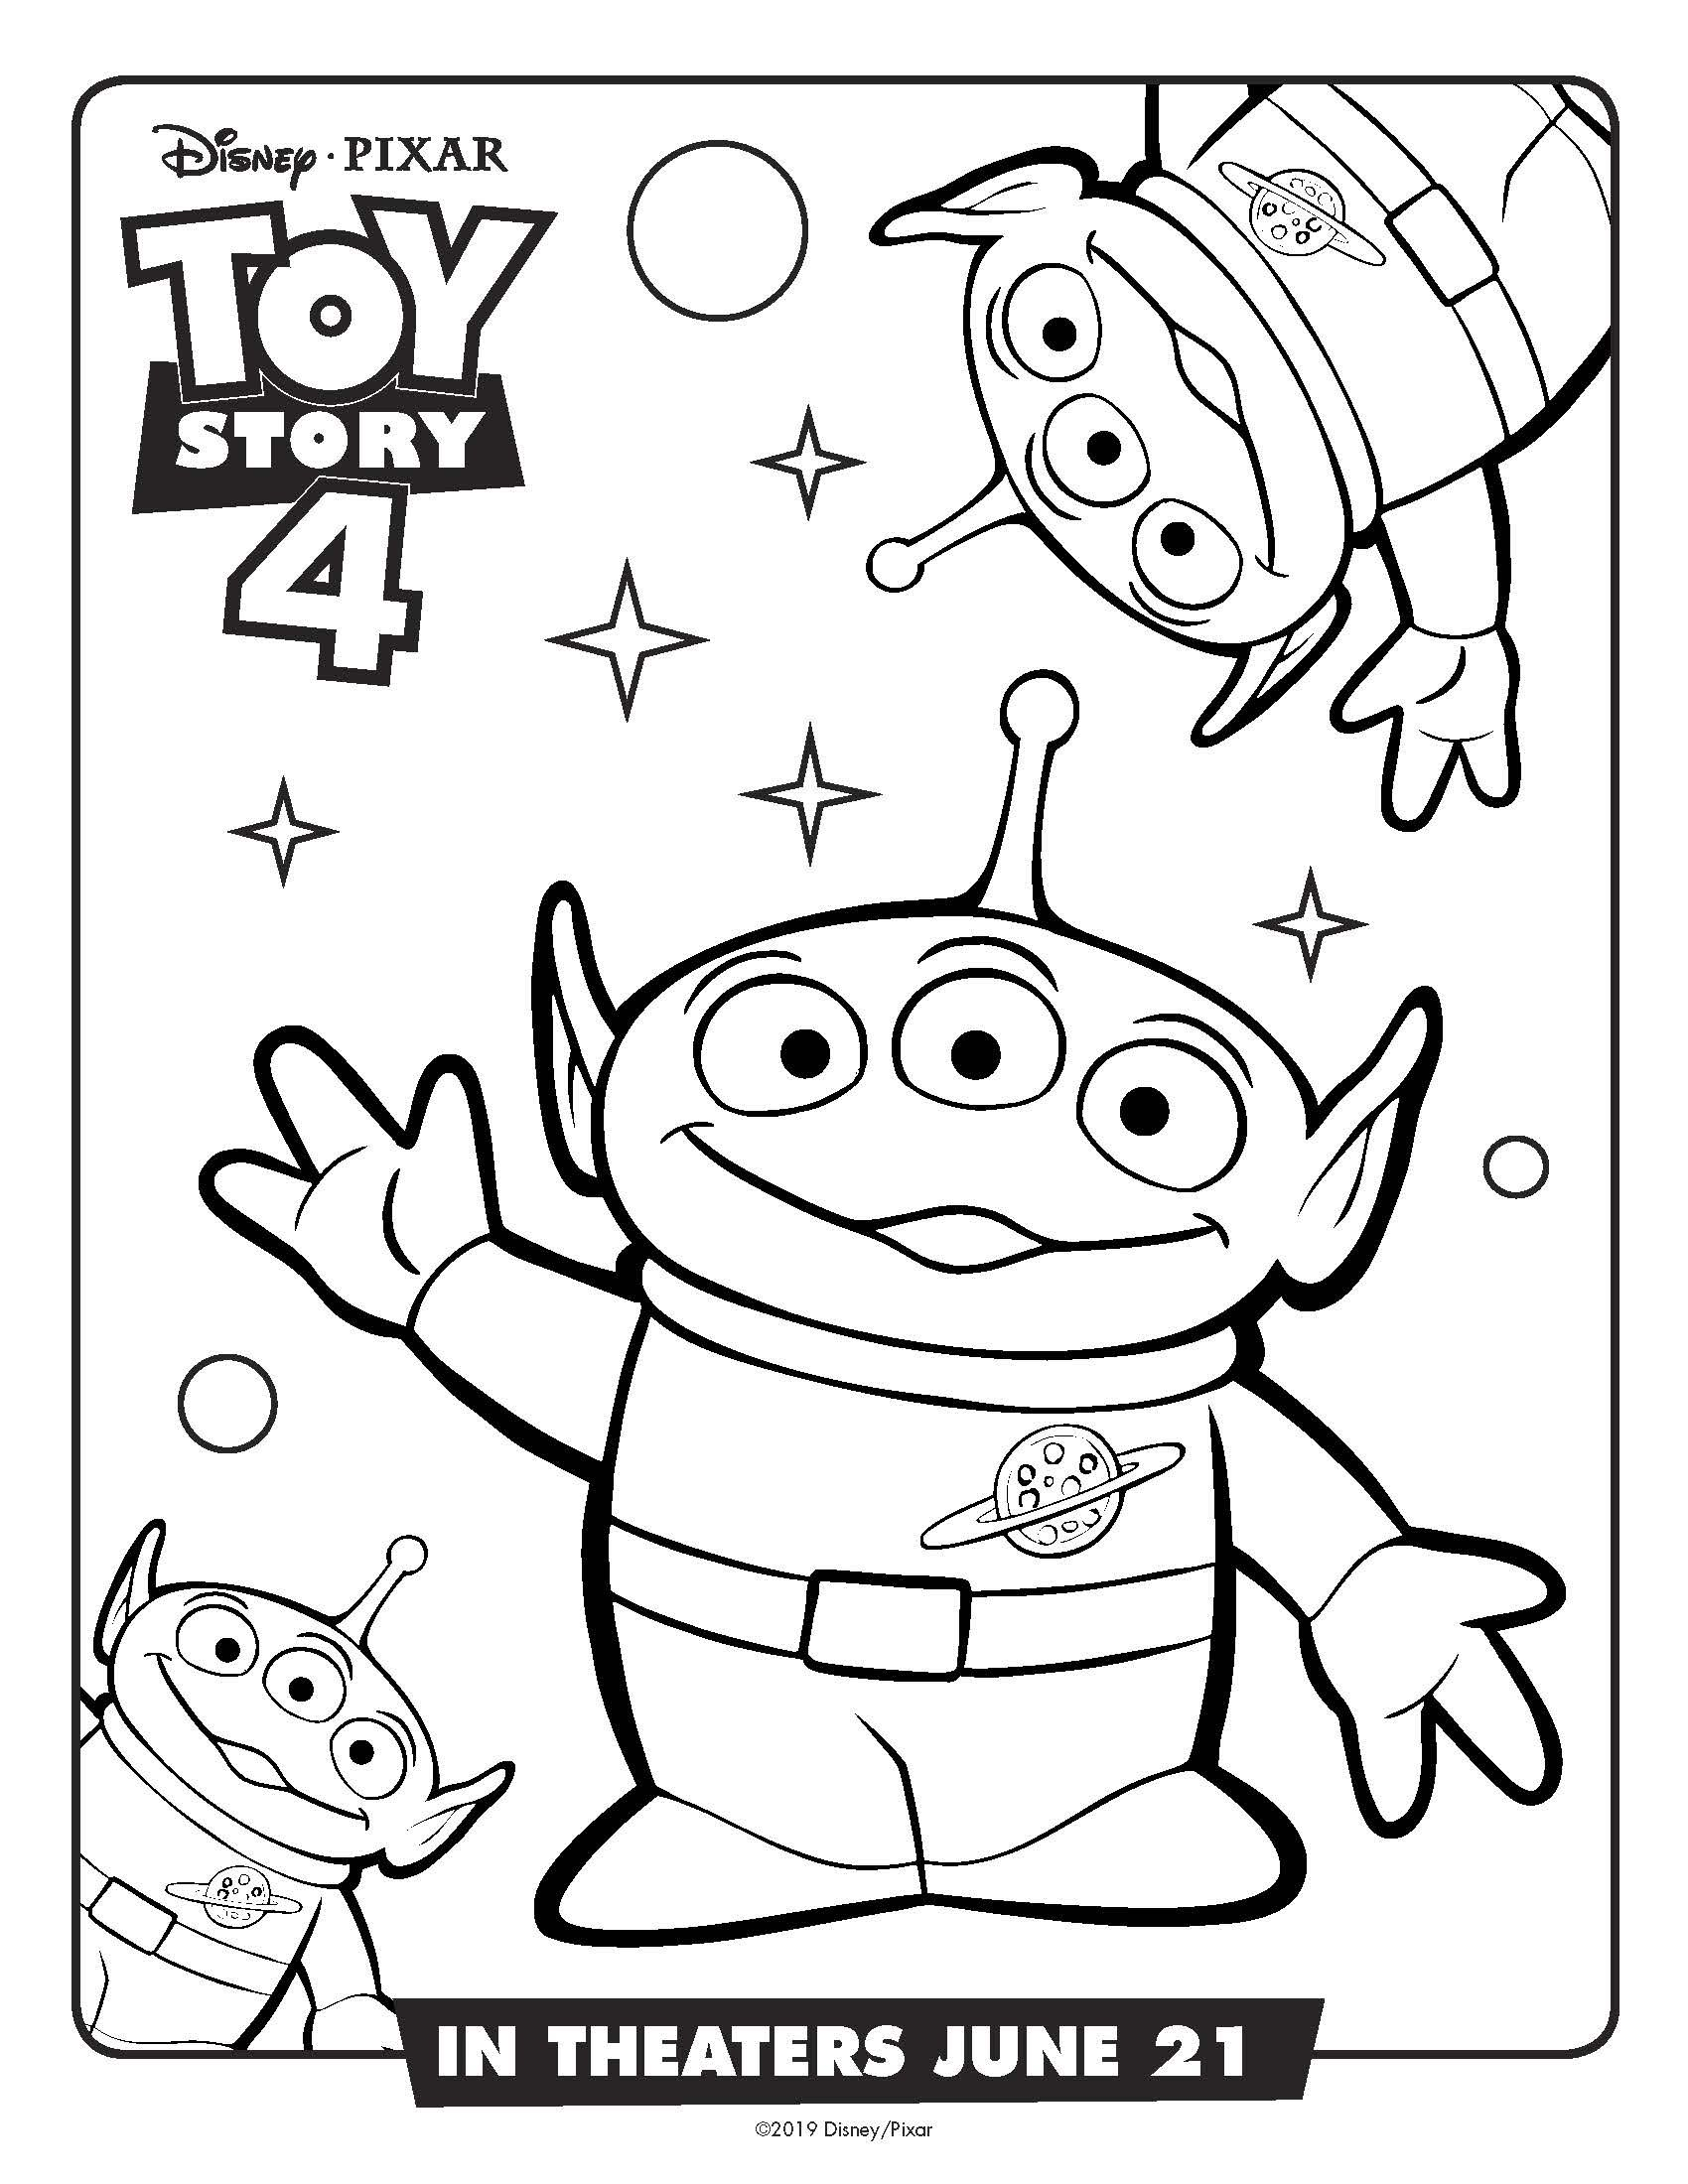 Toy Story Free Printable Coloring Sheets Toy Story Coloring Pages Toy Story Printables Disney Coloring Pages